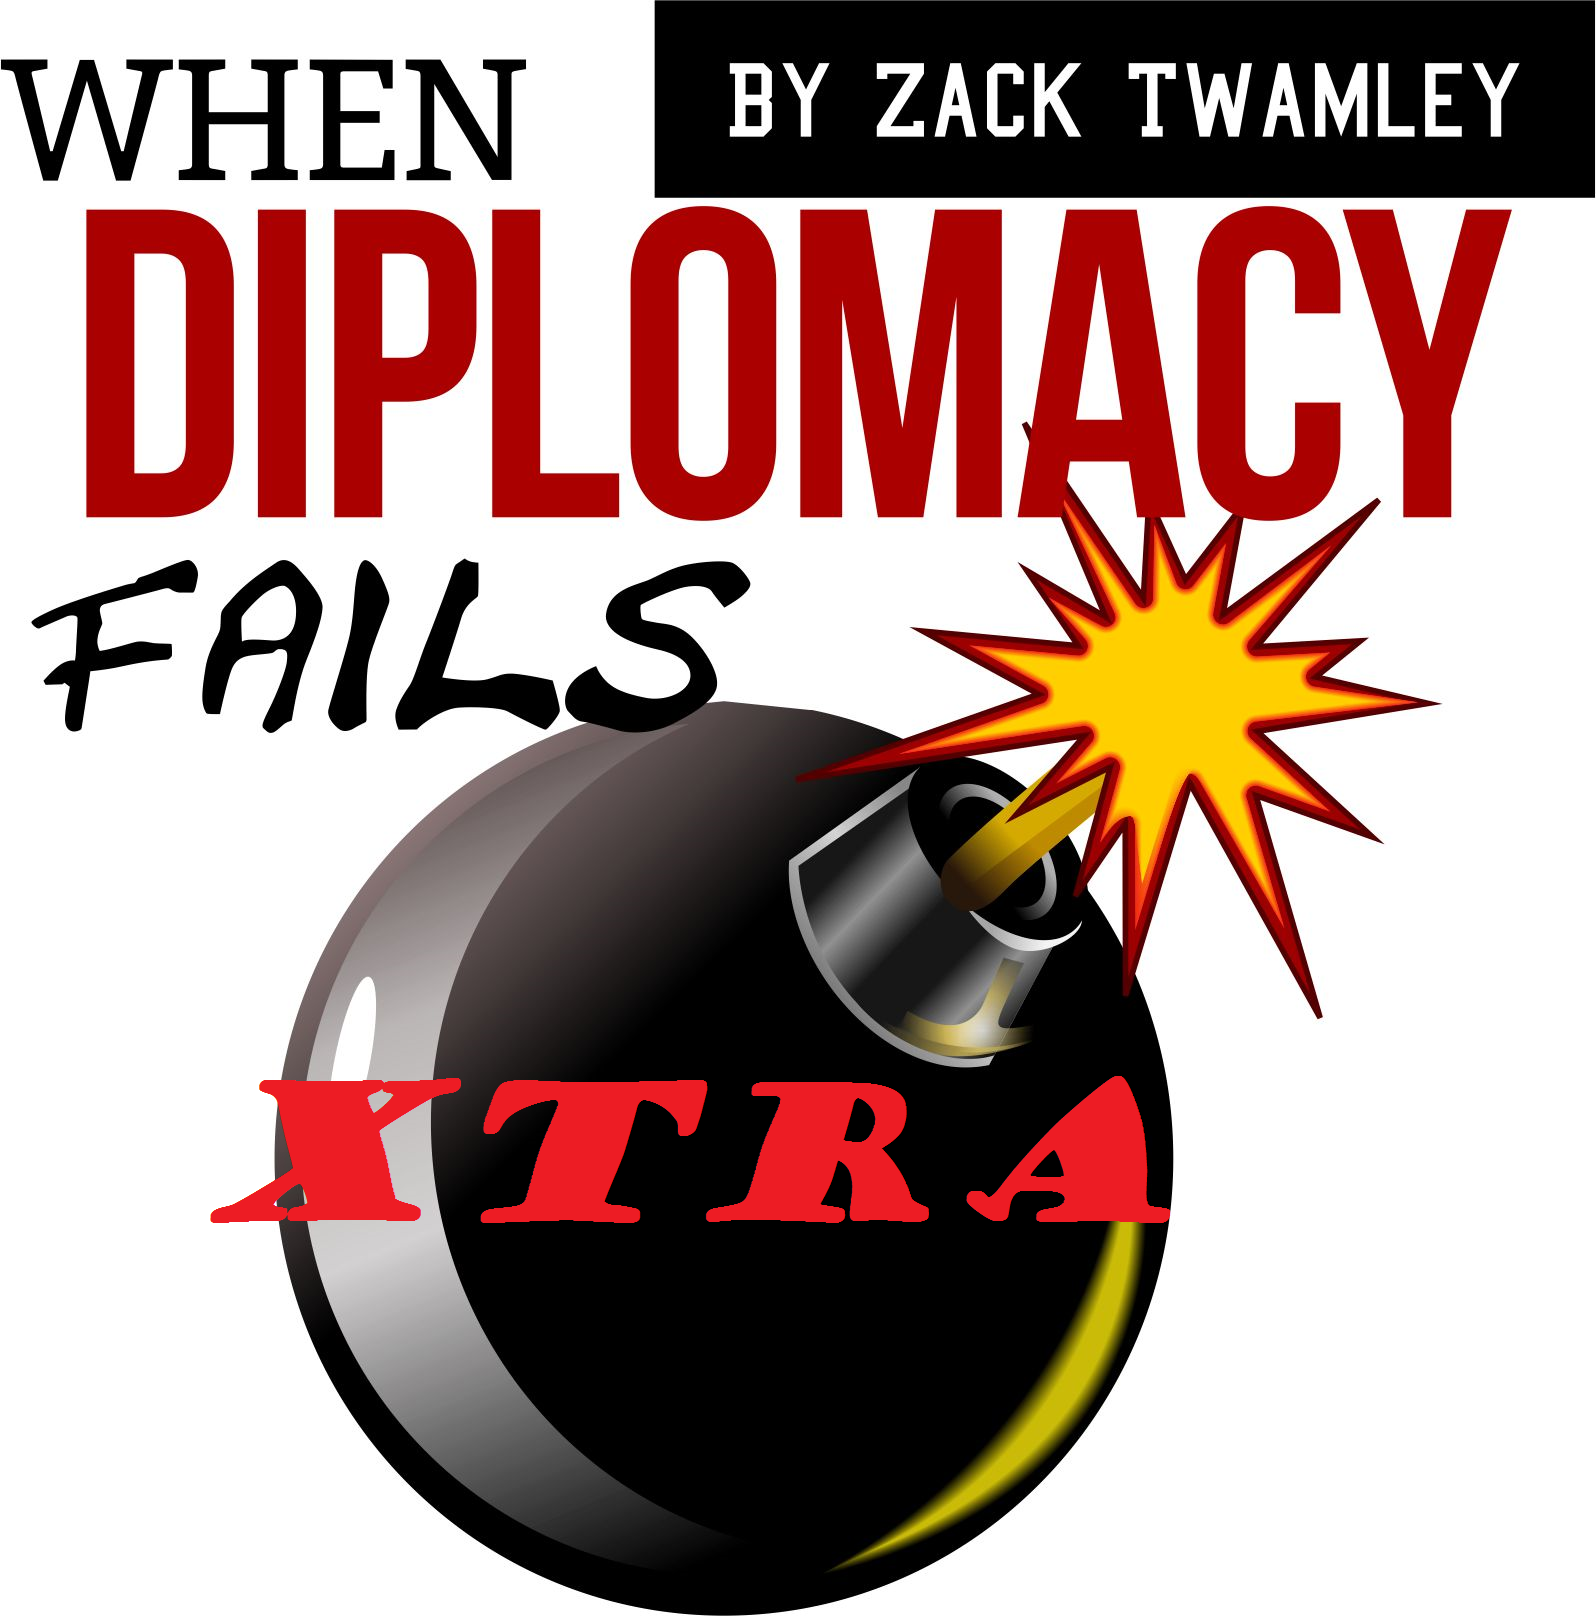 When Diplomacy Fails Podcast 's Xtra Feed is available to Patrons who pay $5 or more a month, and it's a model I'm quite proud of, even considering it's rocky past.